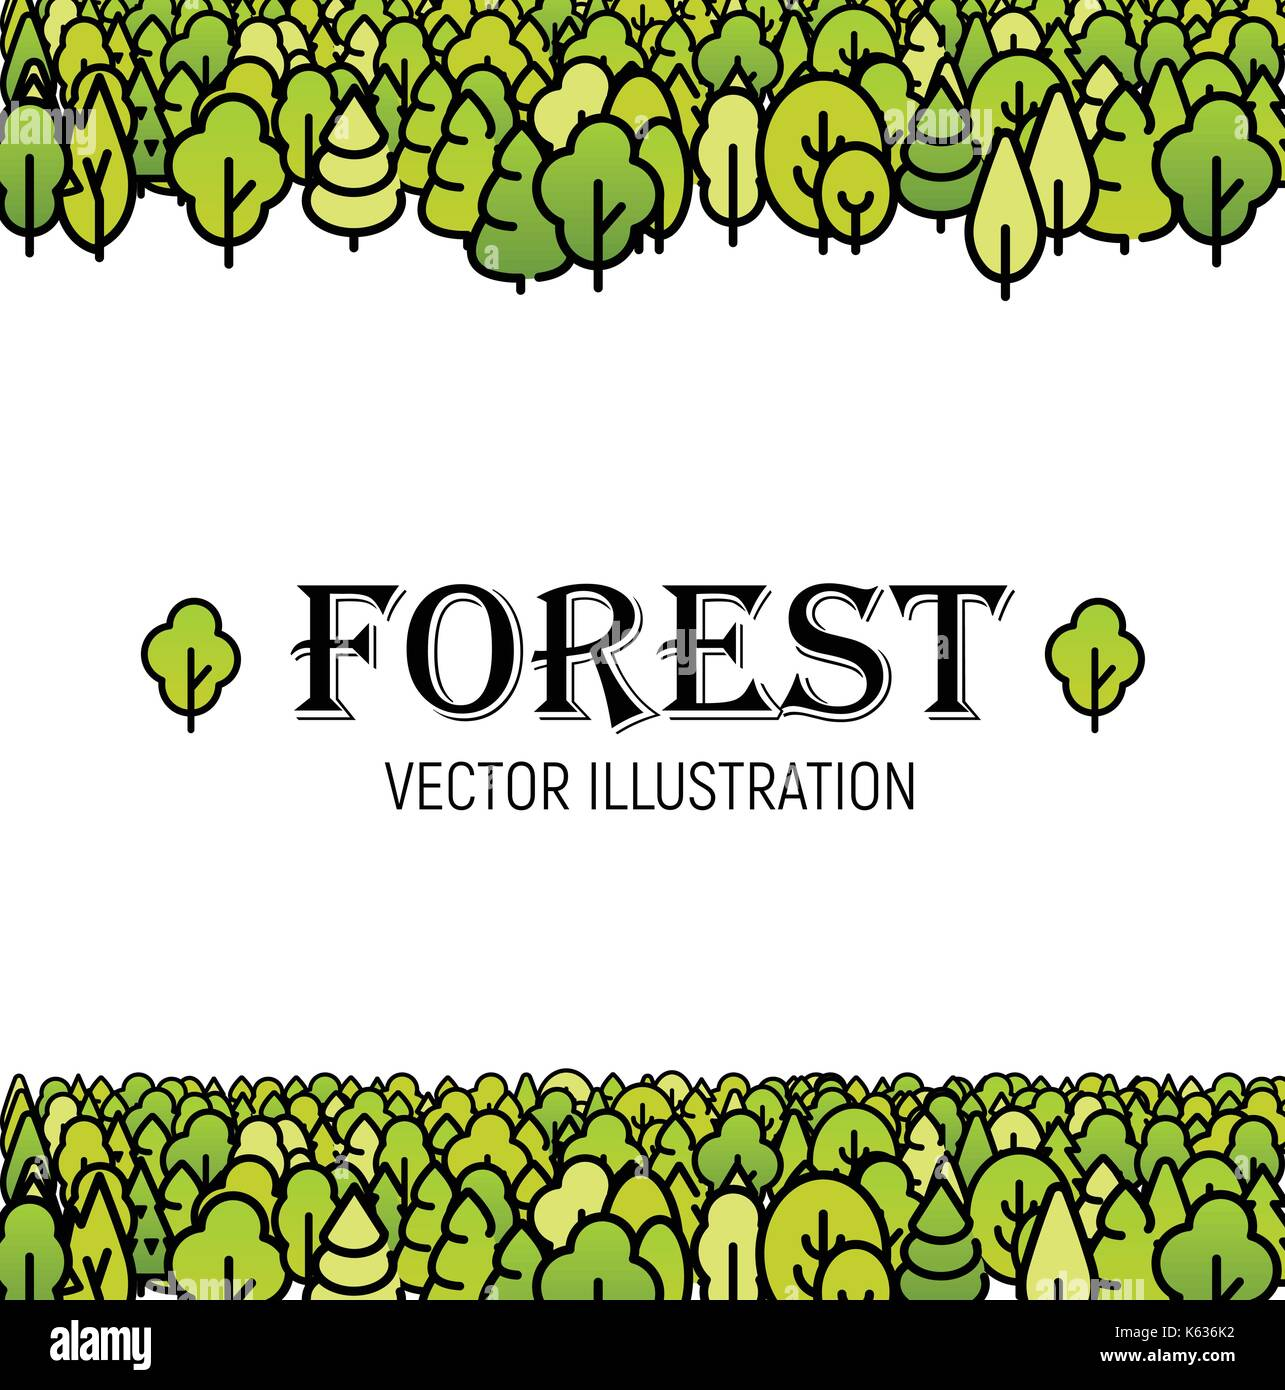 Forest green line art trees background vector illustration template print for brochure, card, poster, booklet cover - Stock Vector